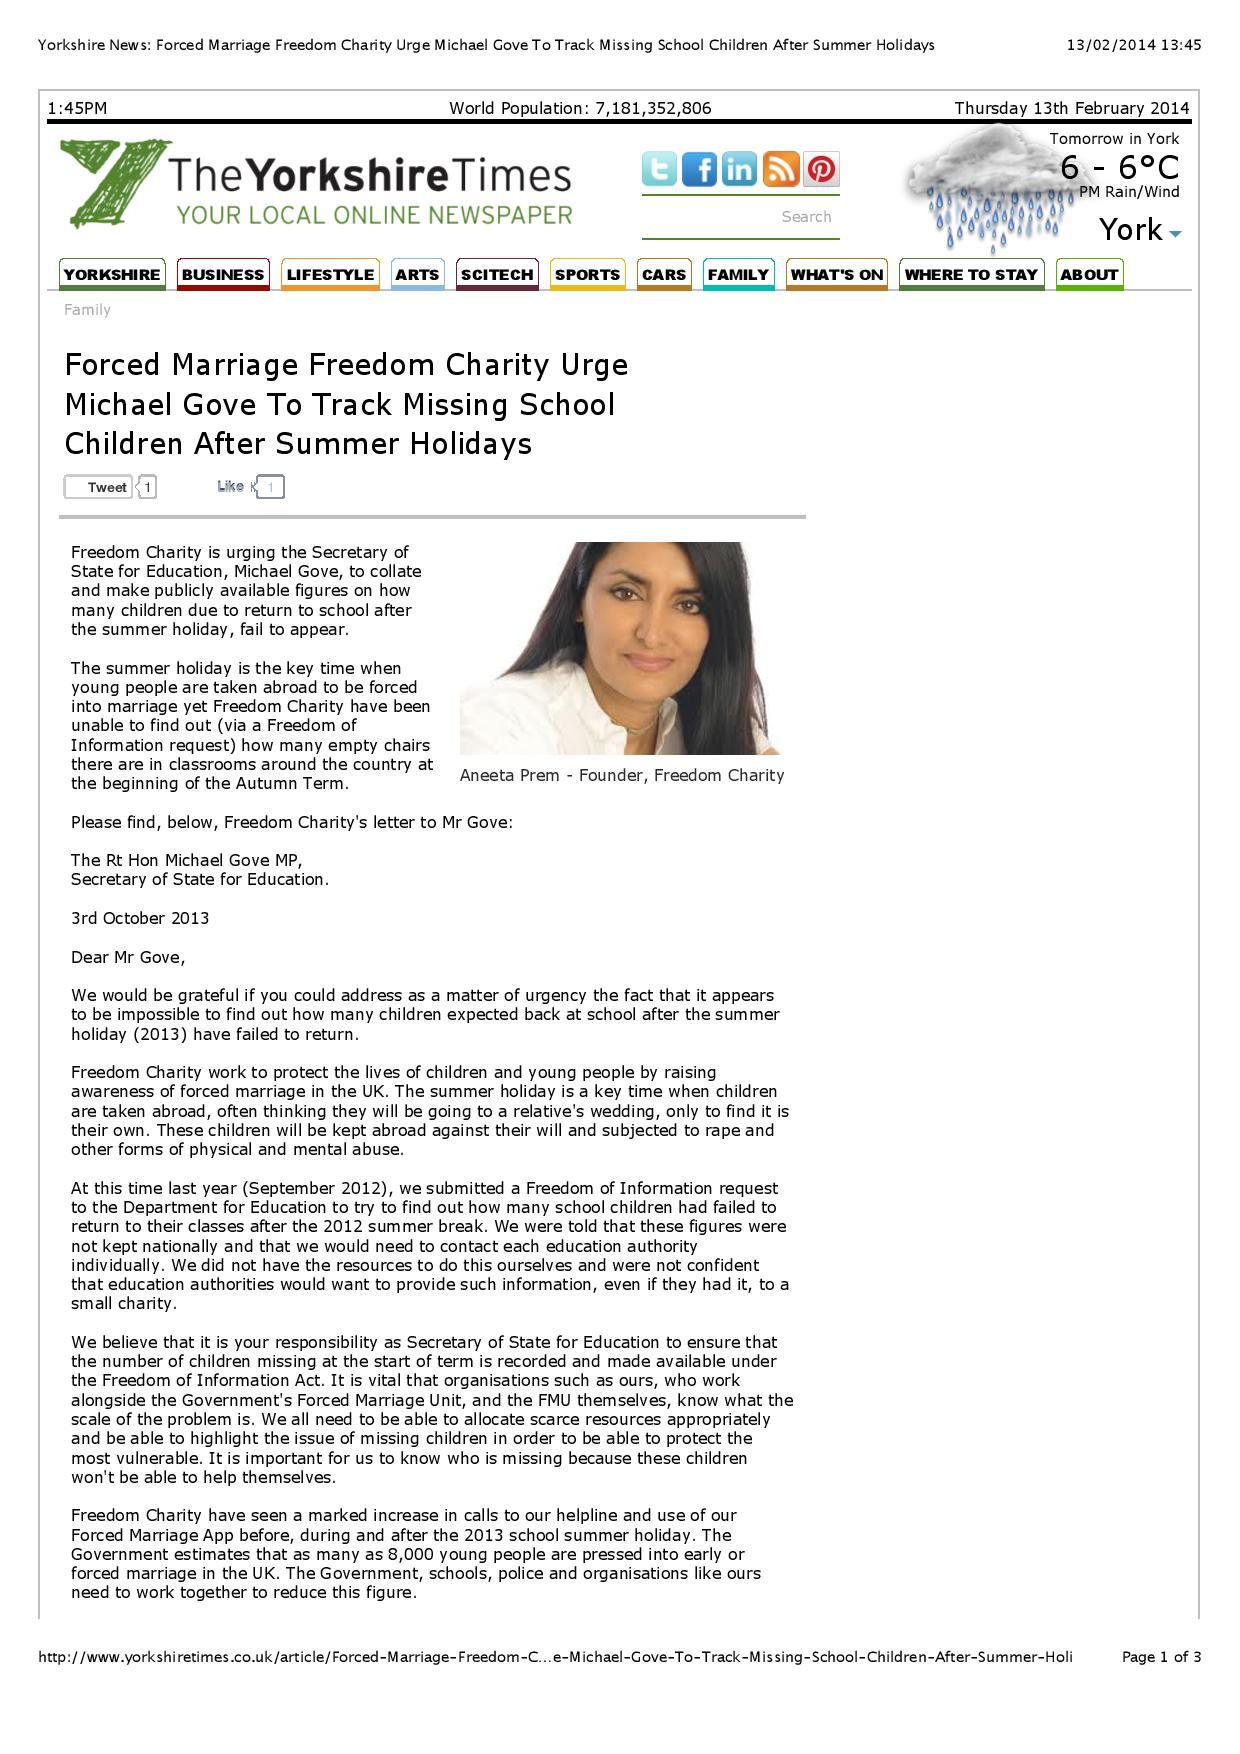 yorkshire-news-forced-marriage-freedom-charity-urge-michael-gove-to-track-missing-school-children-after-summer-holidays-page-001